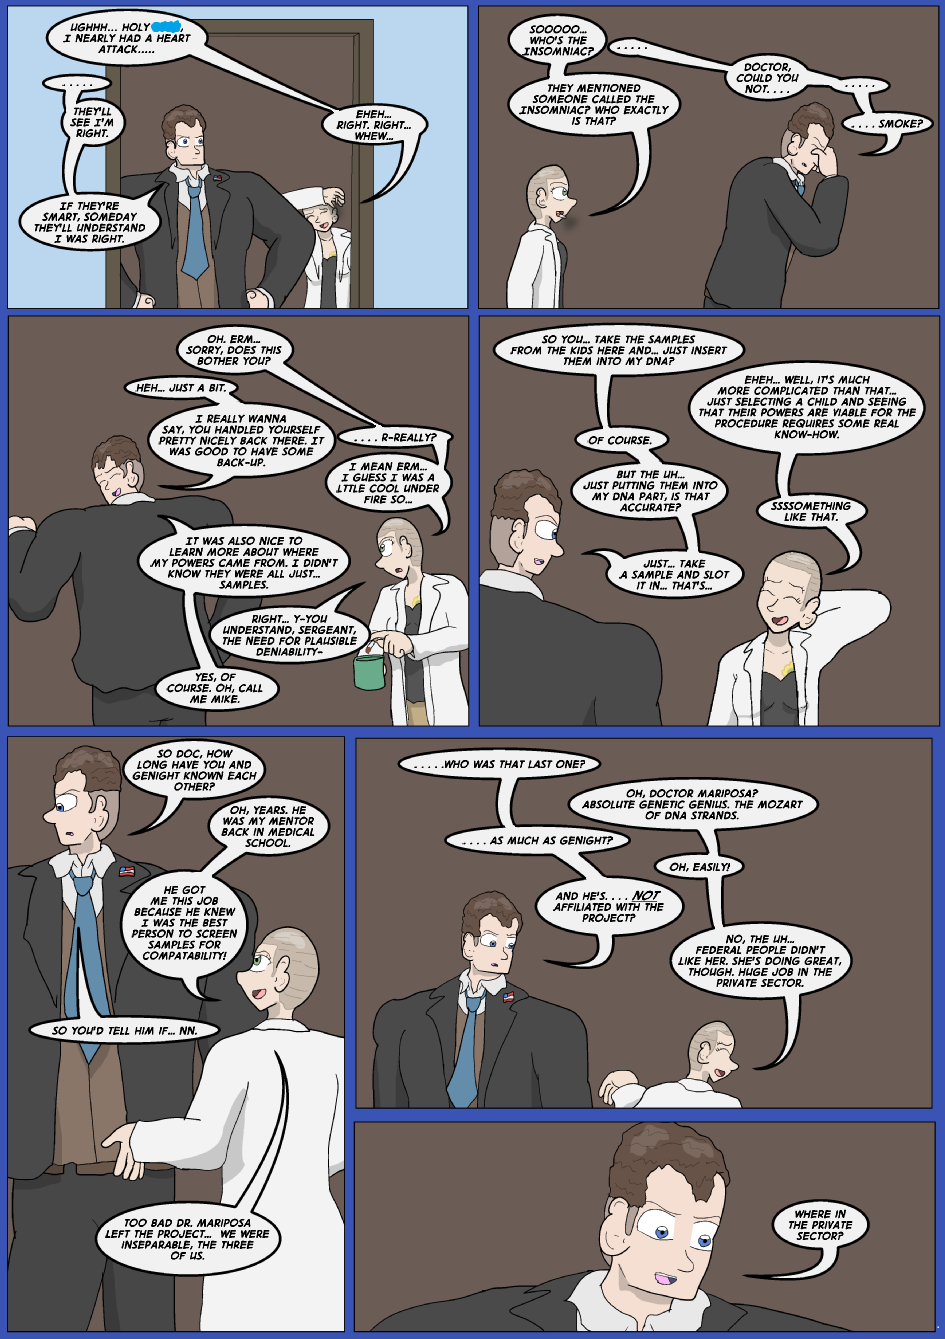 Showing Your Blue Colors- Page 16